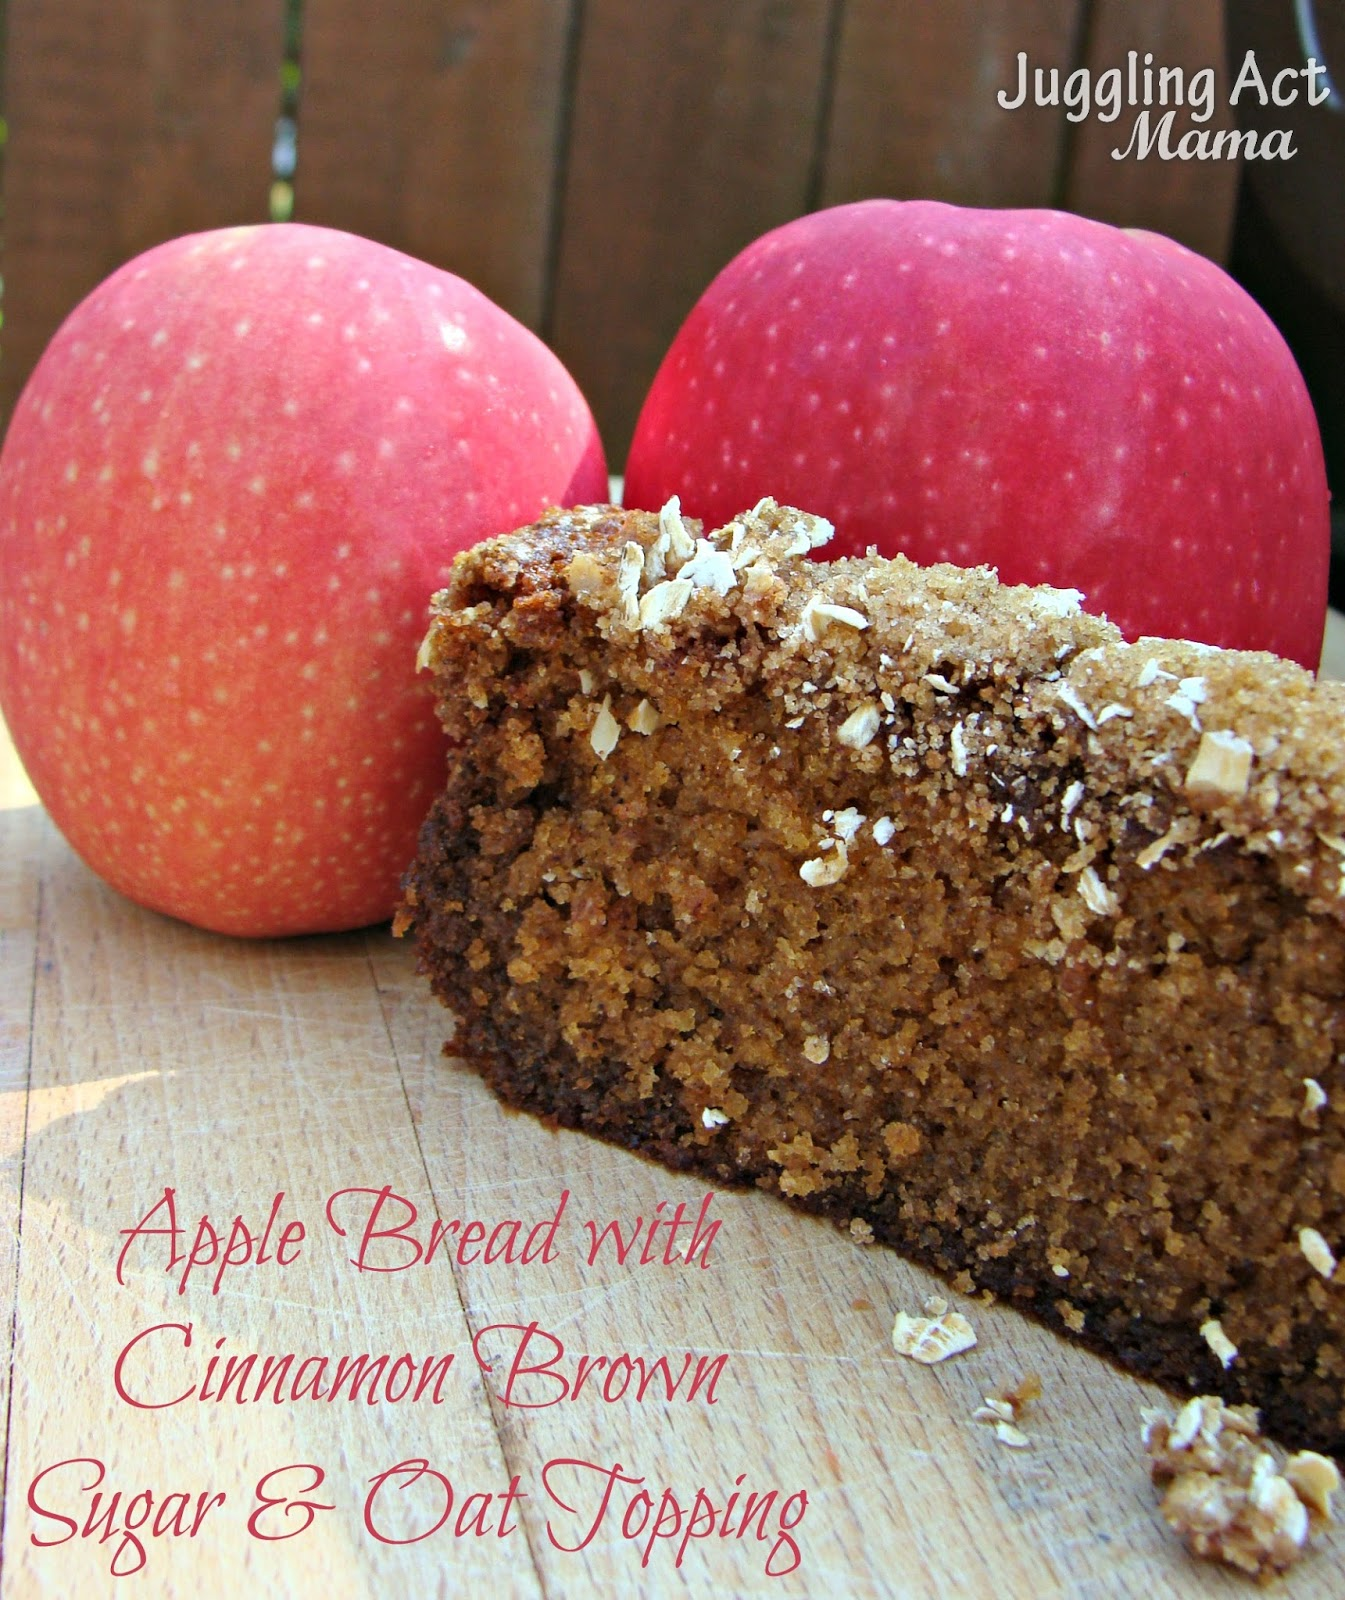 One of my favorite recipes is from the amazing cook book Apples for ...